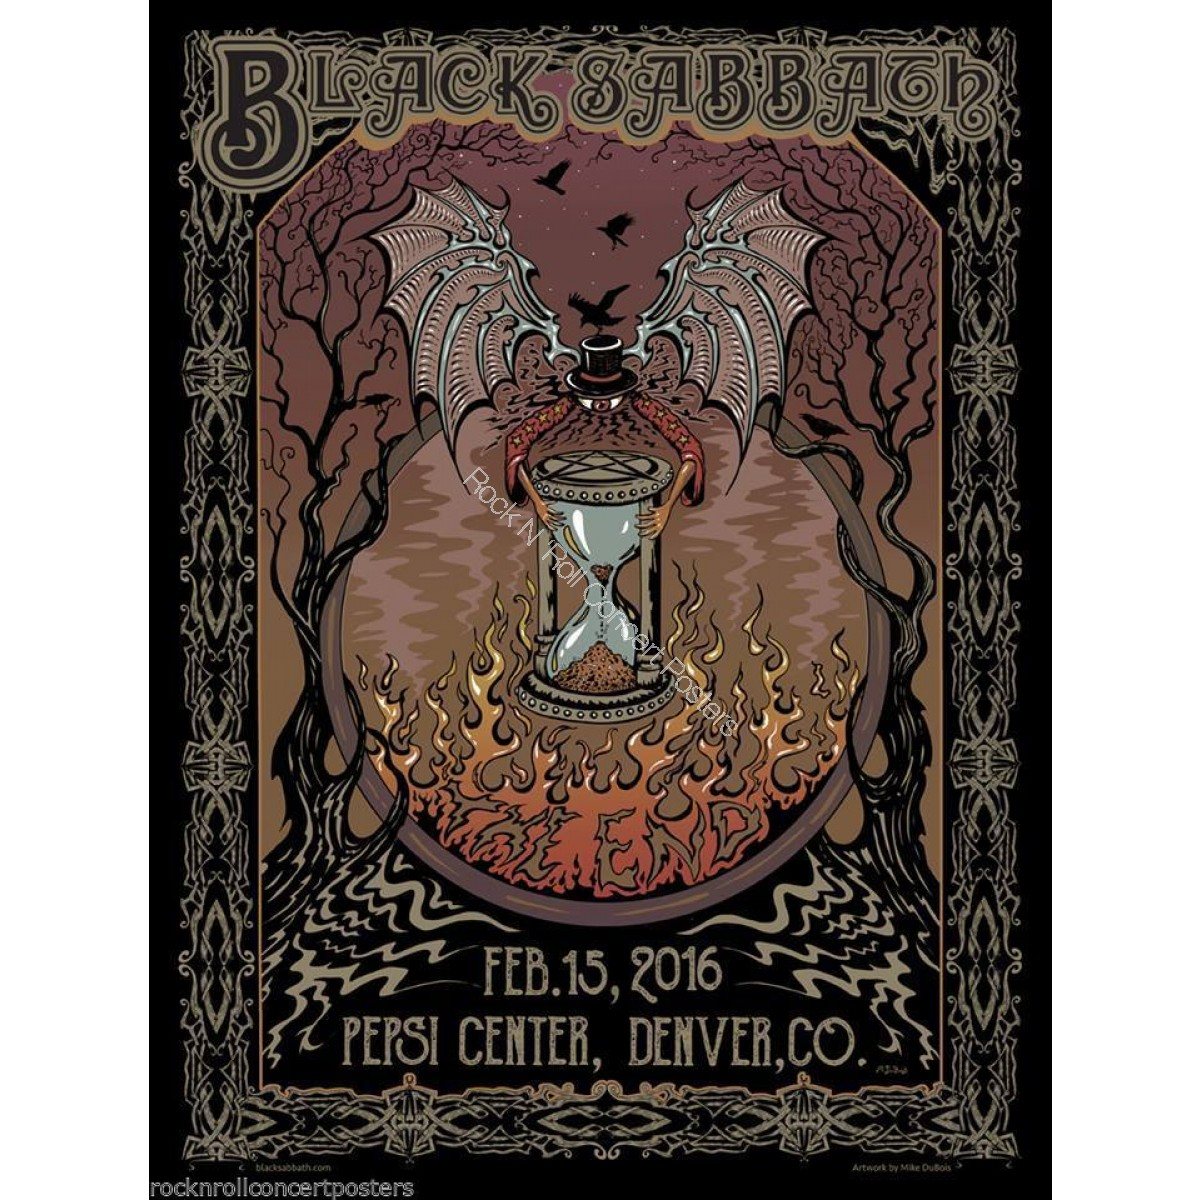 BLACK SABBATH DENVER 2/15/16 LIMITED EDITION HAND NUMBERED SCREEN PRINT CONCERT POSTER MINT